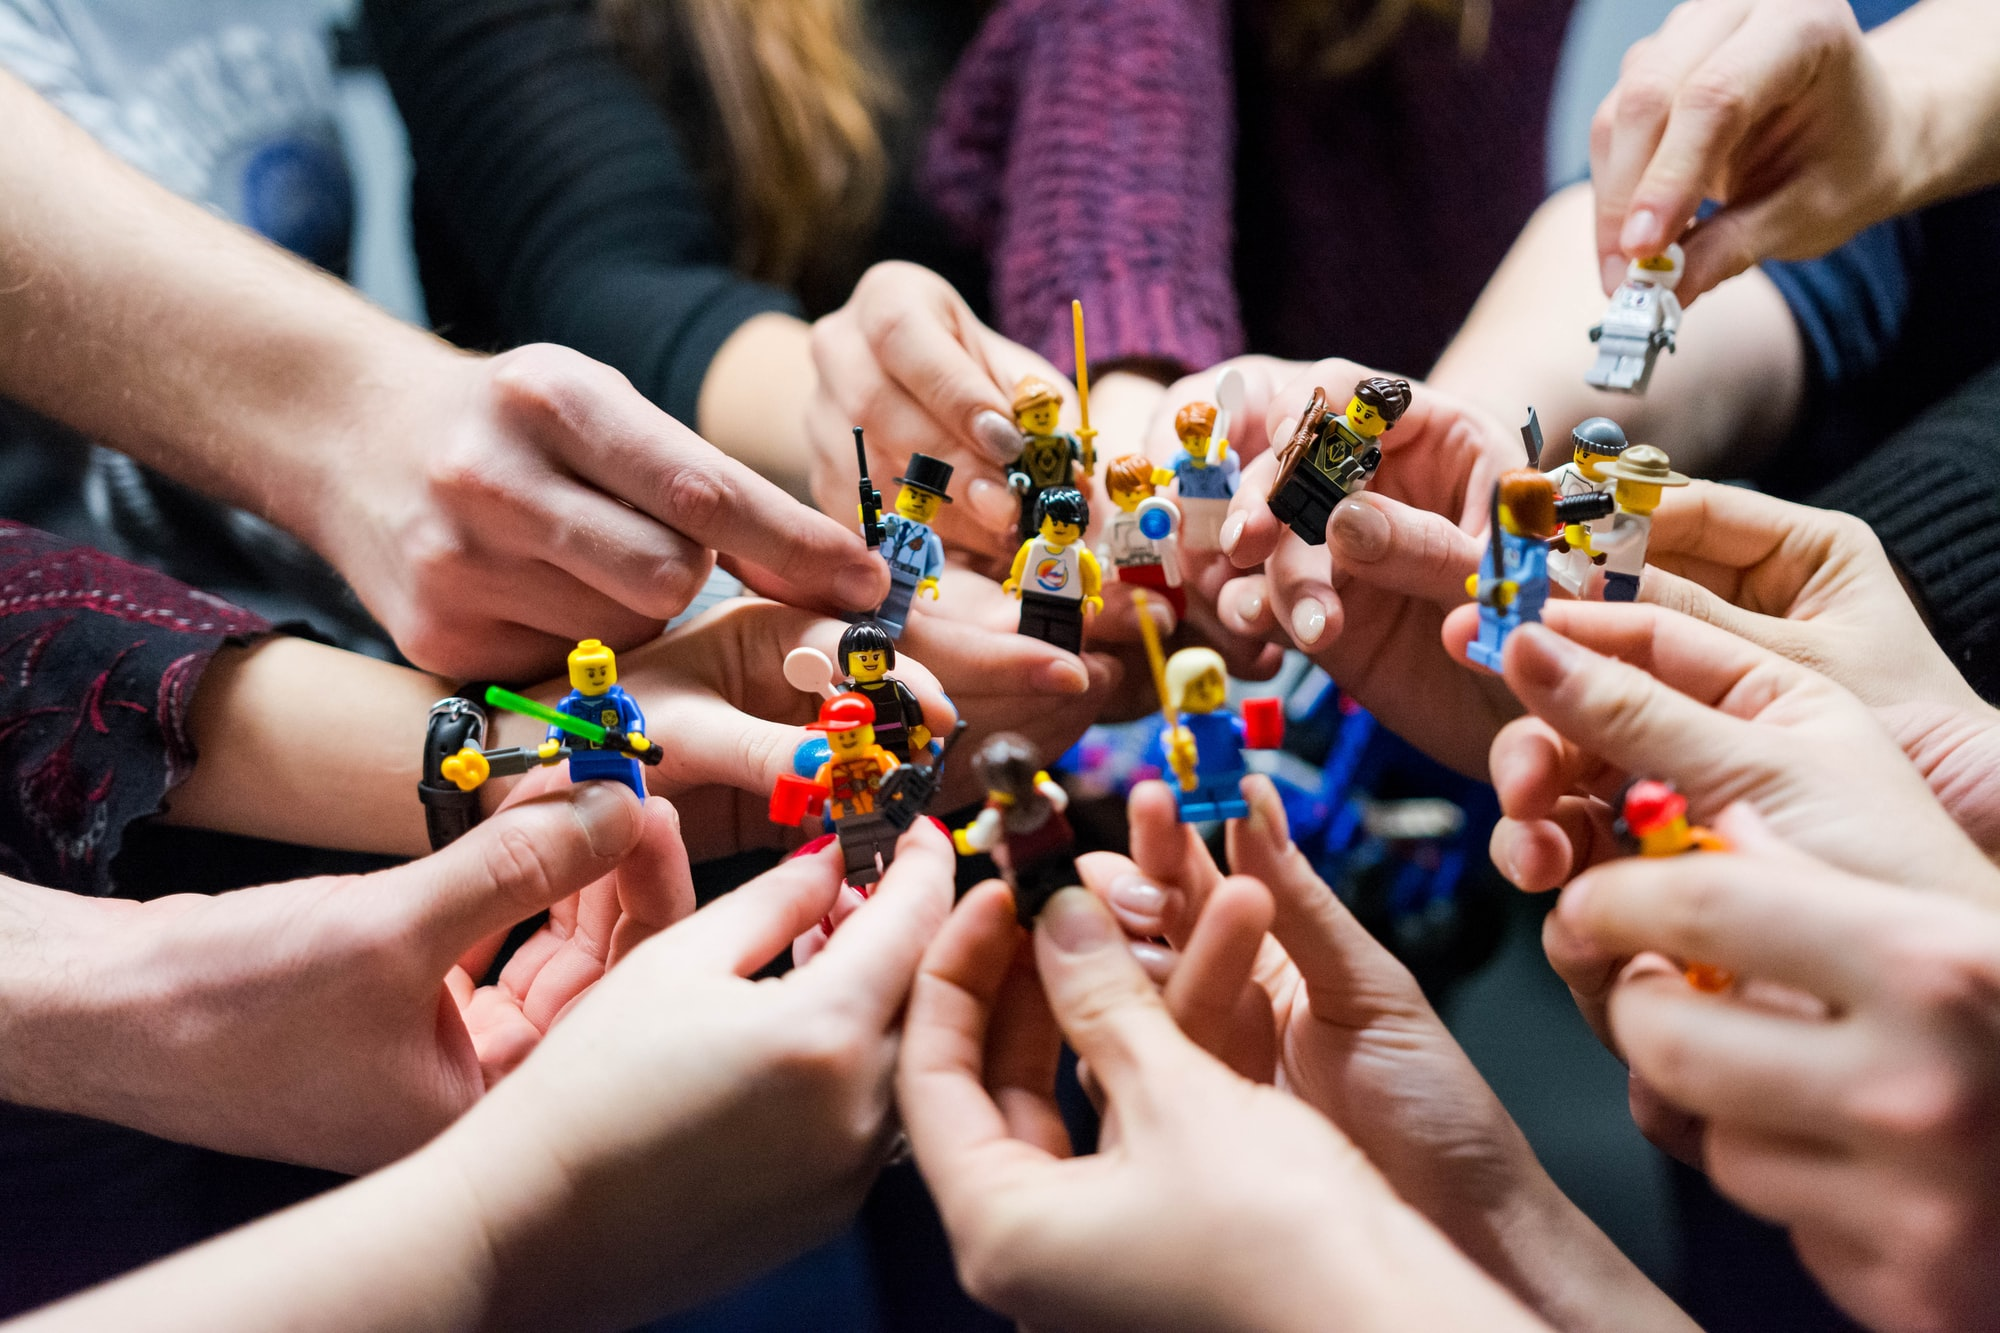 From Lego to Now: The Importance of Creativity